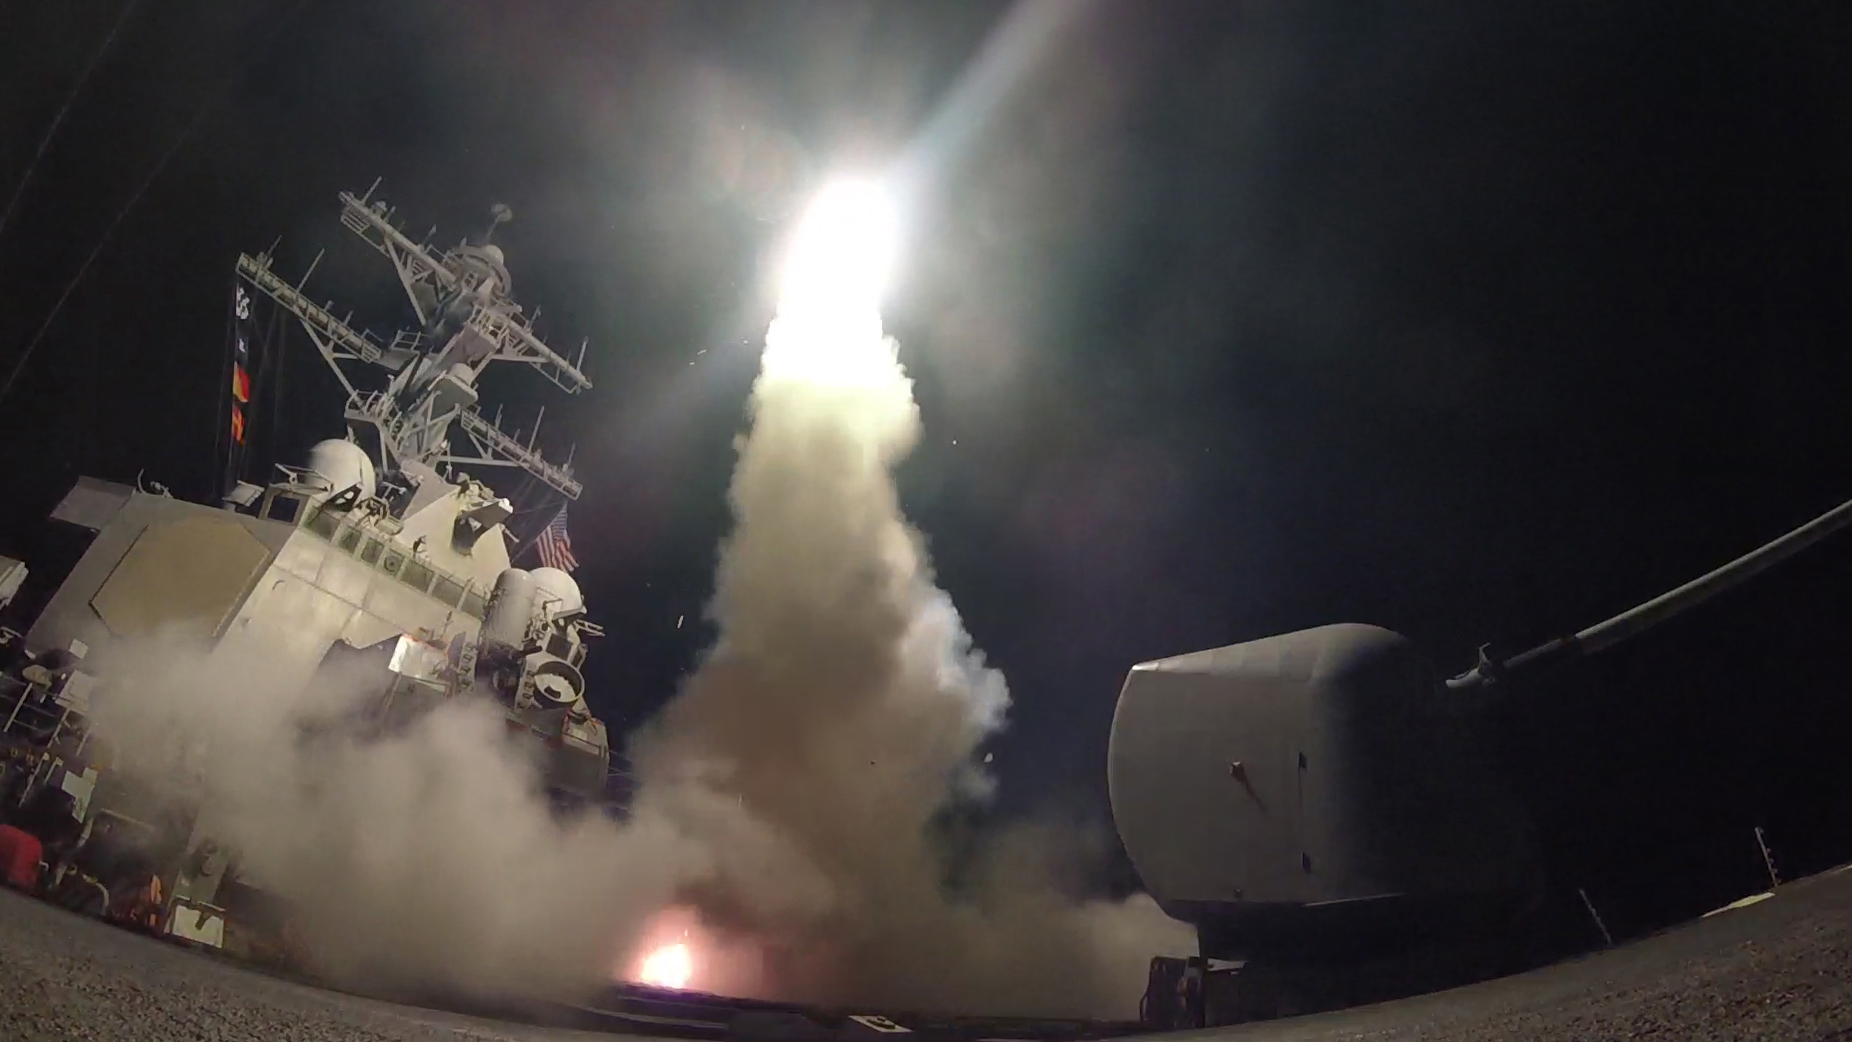 The guided-missile destroyer USS Porter (DDG 78) conducts strike operations while in the Mediterranean Sea, April 7, 2017. The US has carried out a missile attack against an air base in Syria in response to a suspected chemical weapons attack on Khan Sheikhoun rebel-held town. The Pentagon said 59 Tomahawk cruise missiles were fired at 04:40 Syrian time (01:40 GMT) from USS Porter and USS Ross destroyers in the eastern Mediterranean. Photo by US Navy via ABACAPRESS.COM